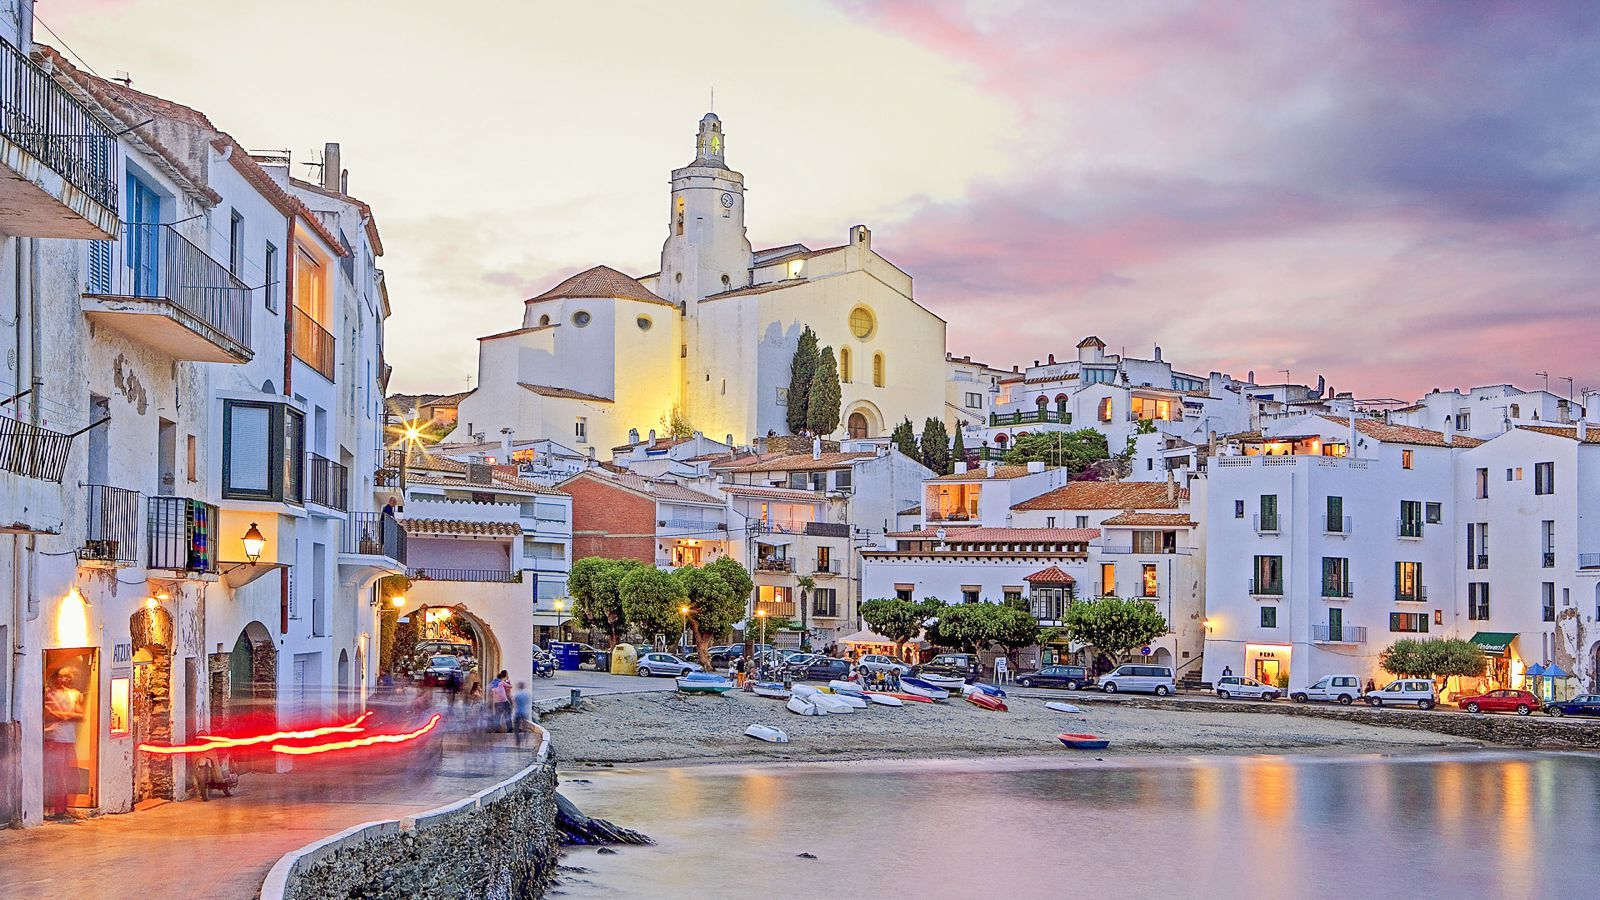 10 beautiful towns in spain you should visit bucket list pinterest spain costa and. Black Bedroom Furniture Sets. Home Design Ideas